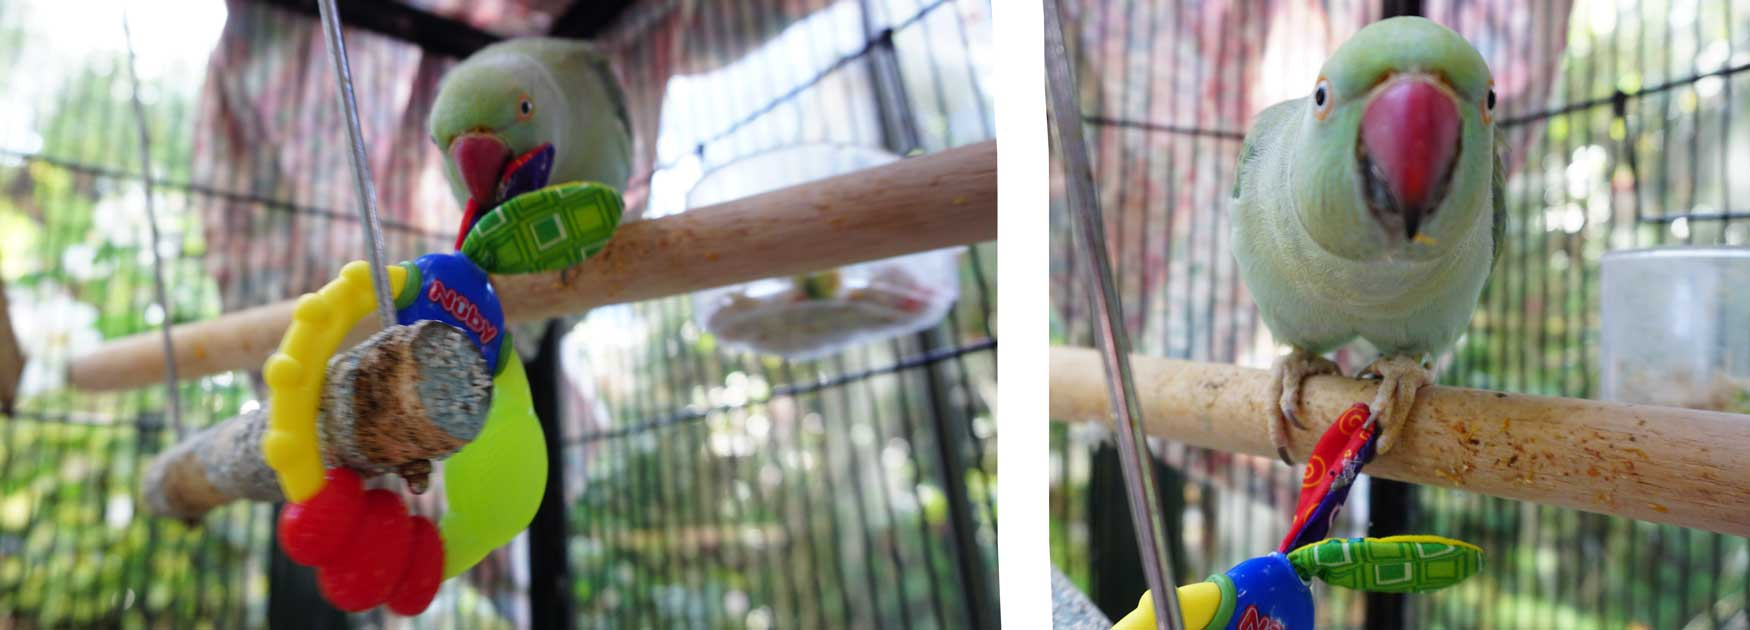 Magick the Indian Ringneck playing with her baby toy